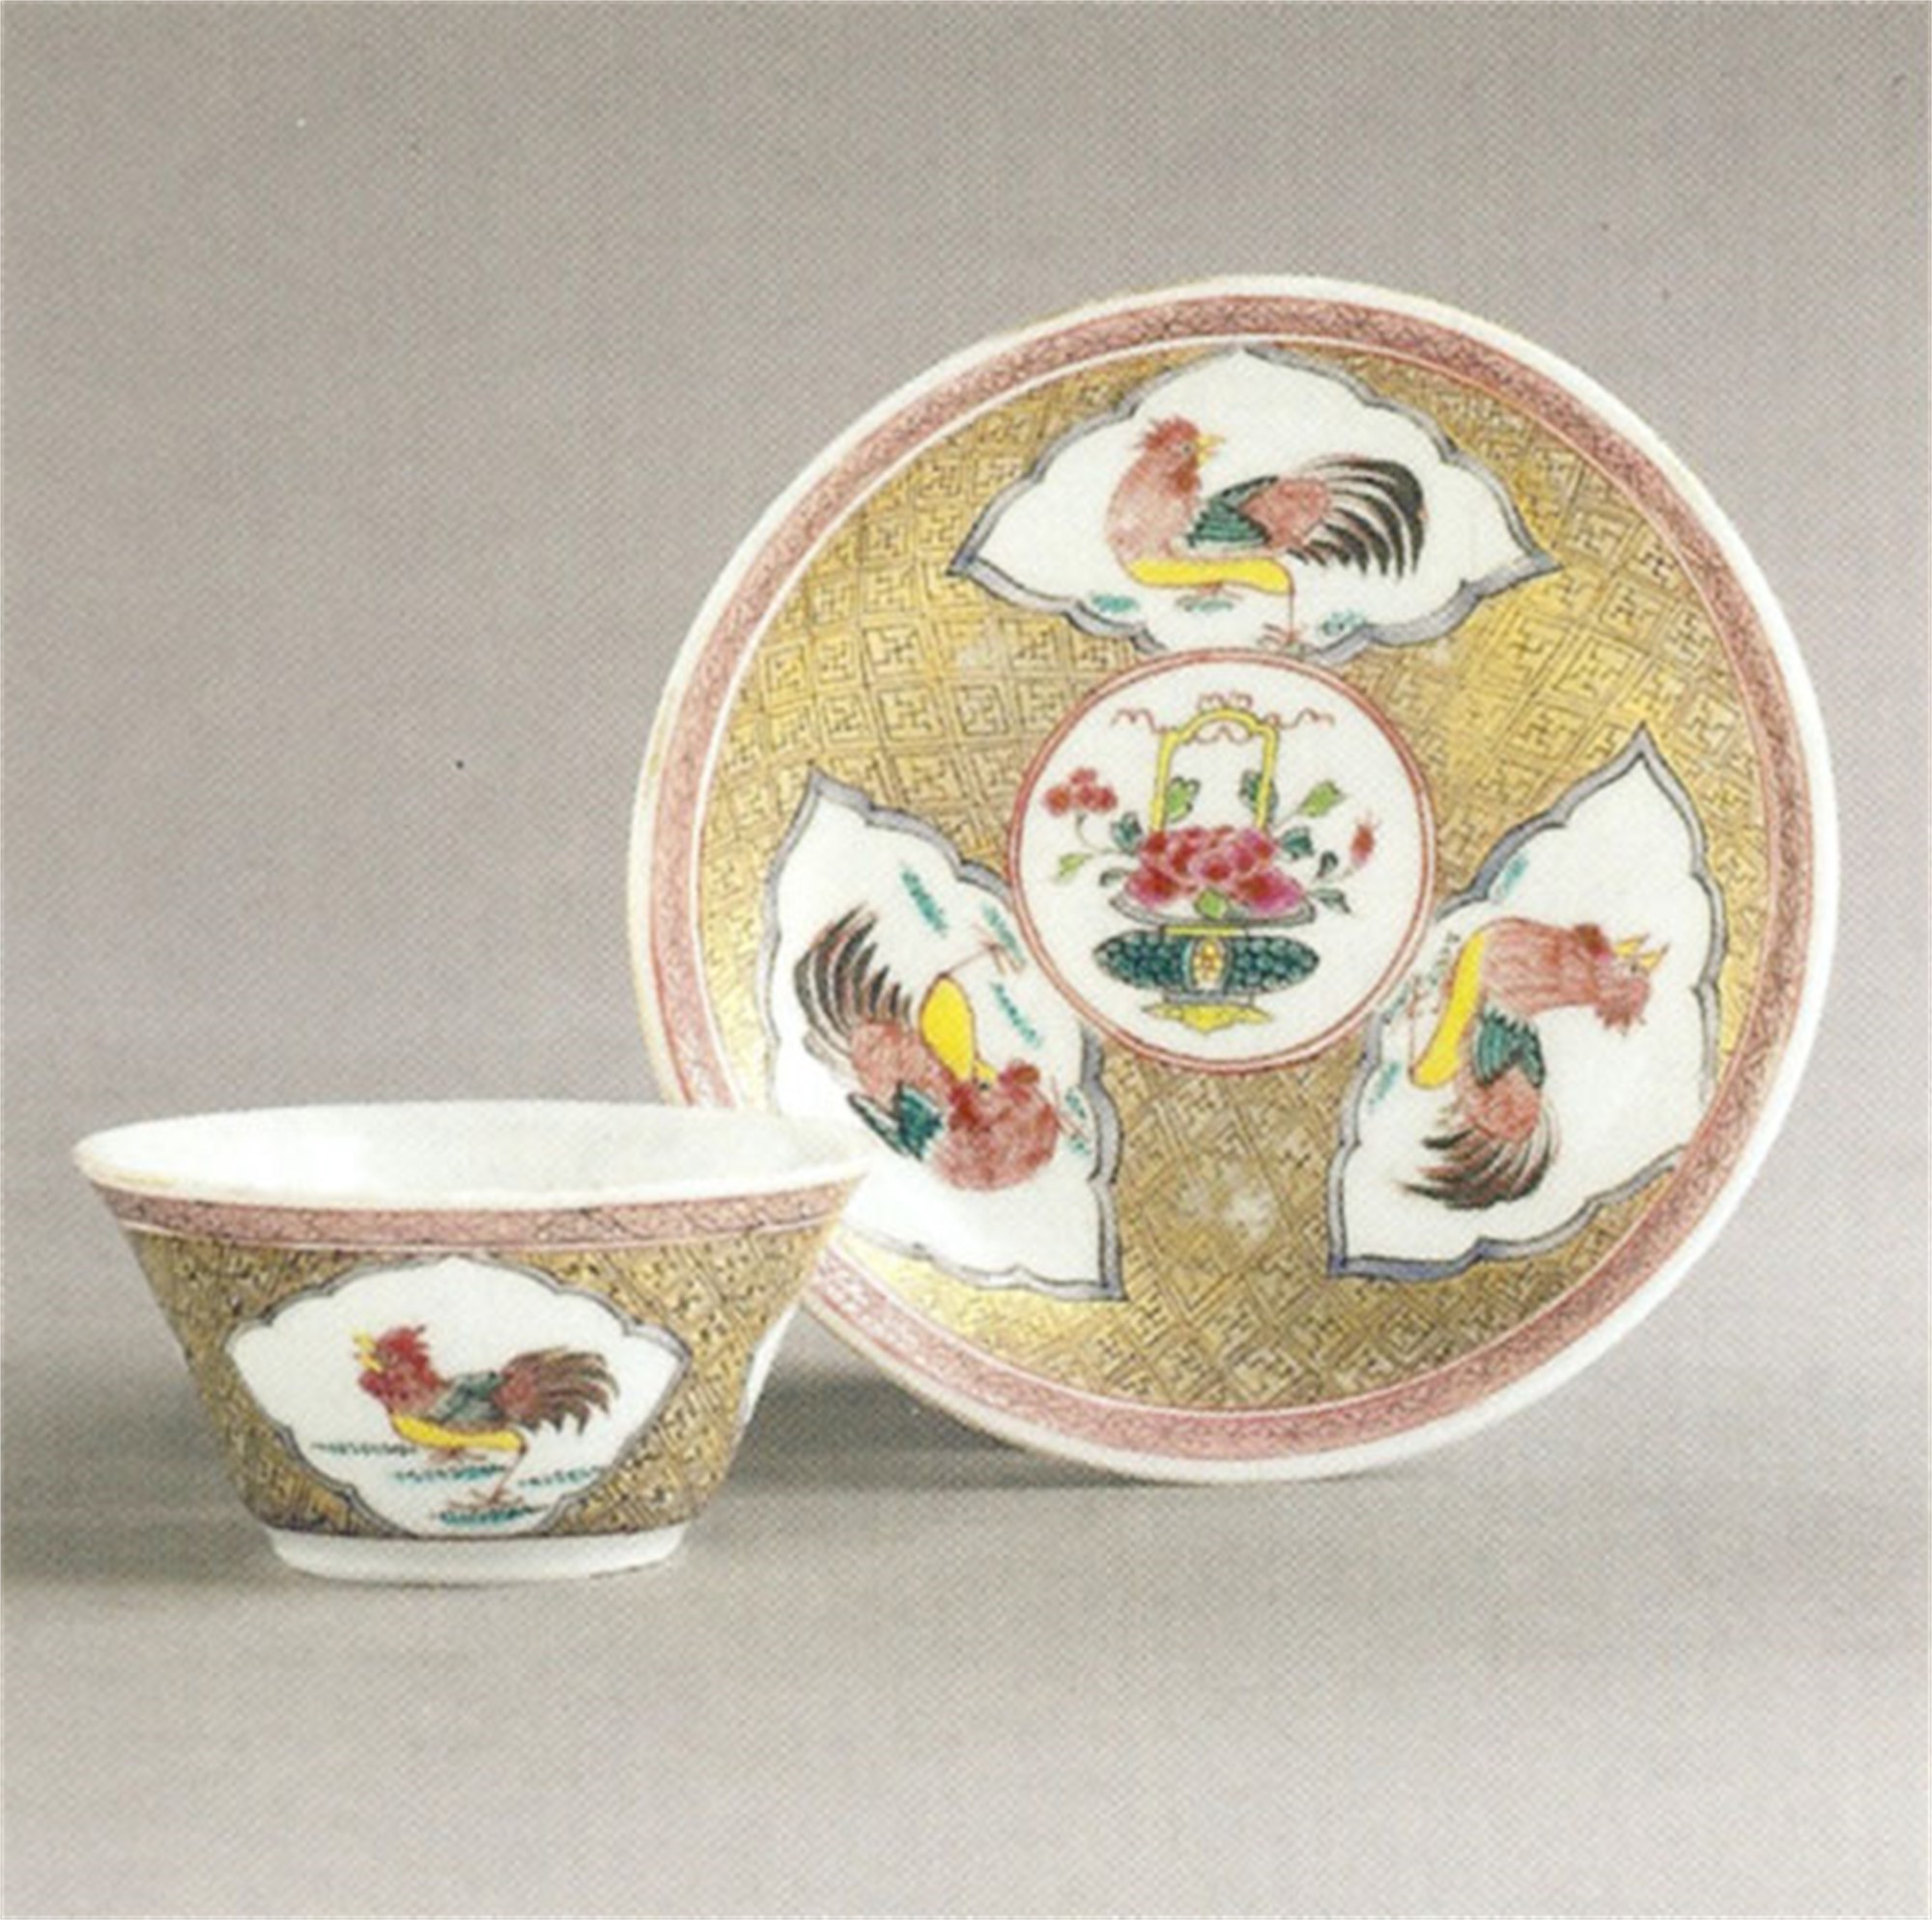 CHINESE EXPORT FAMILLE-ROSE EGGSHELL TEA BOWL AND SAUCER